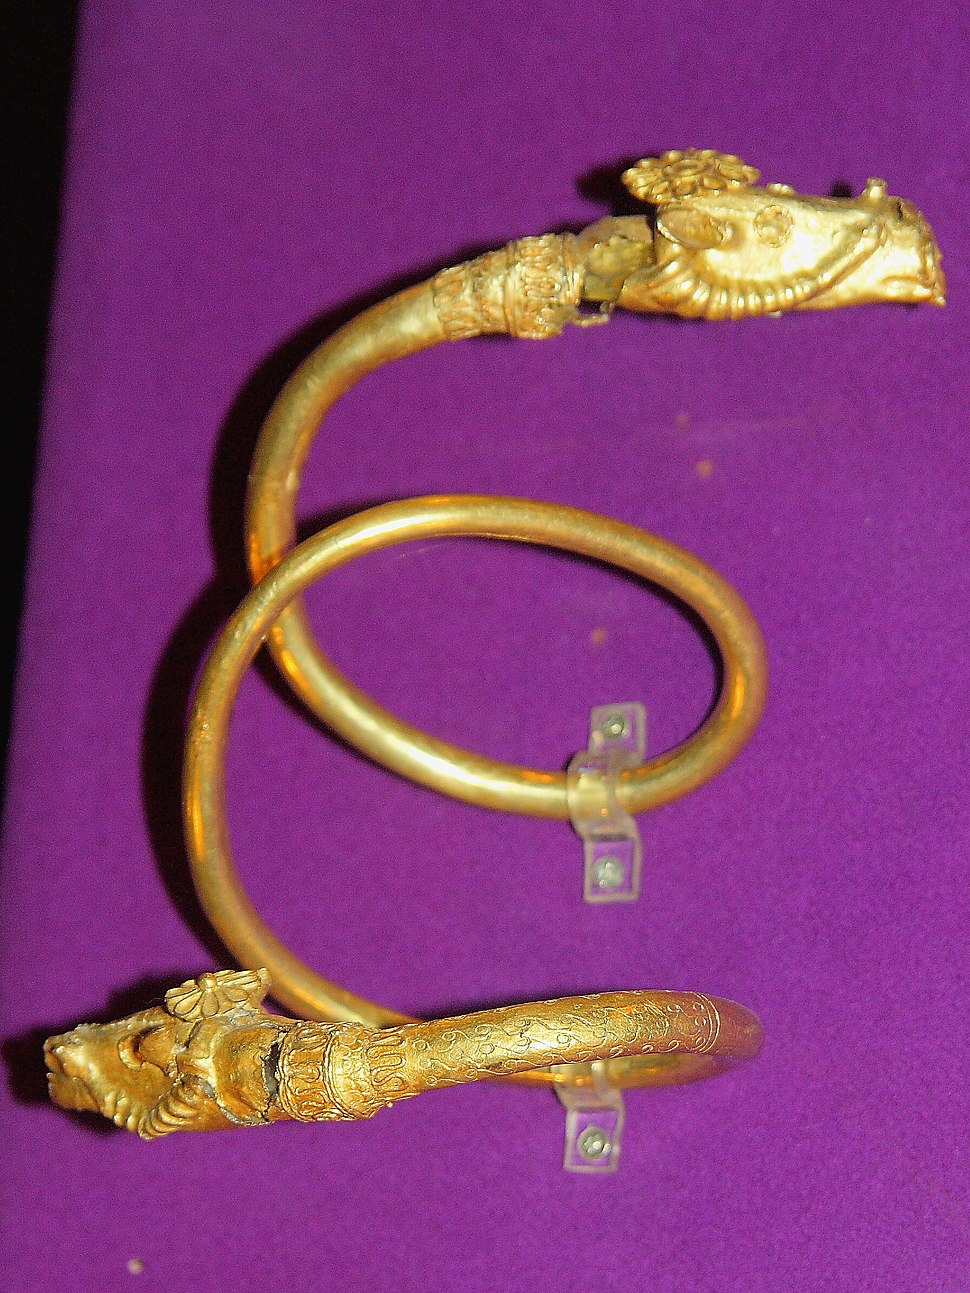 Dacian Gold Bracelet at the National Museum of Romanian History 2011 - 2